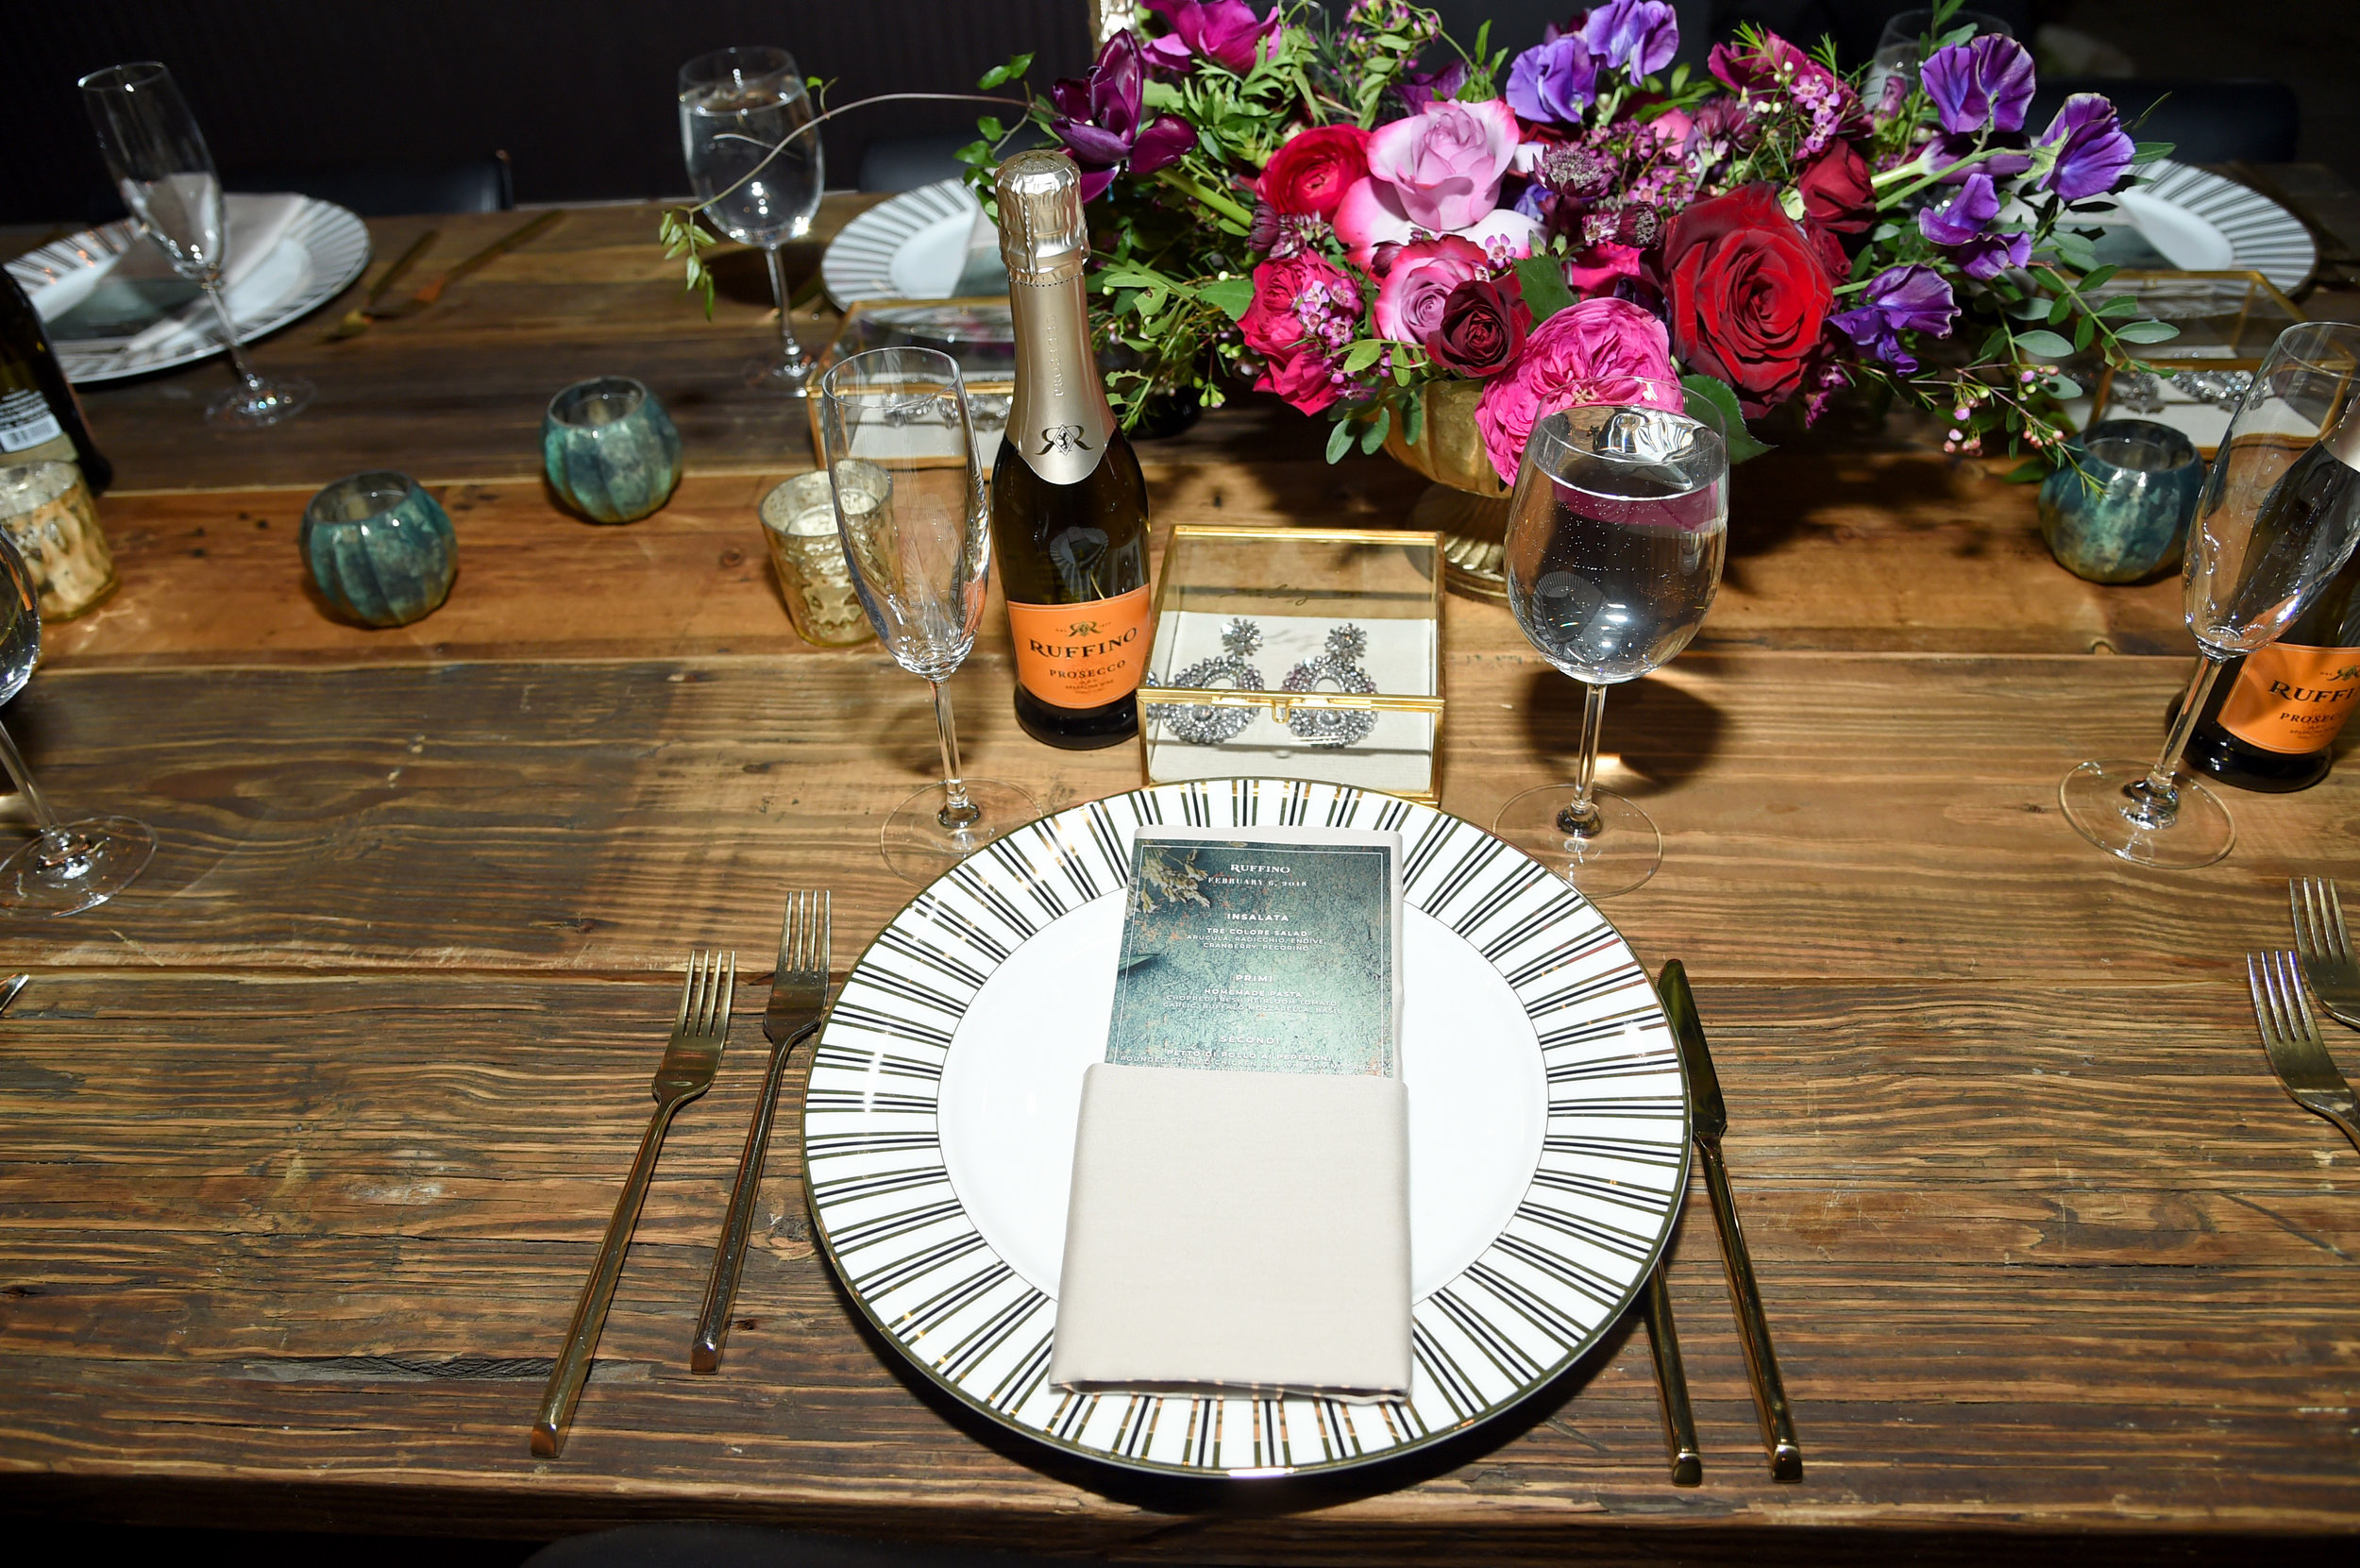 Mimi Brown Studio. Dannijo x Ruffino.  Mimi Brown Studio specializes in celebrations ranging from stunning weddings and private celebrations to international destination experiences and not for profit events. With over 10 years of experience the studio focuses on the age-old notions of hospitality, graciousness and generosity, and on creating experiences that share these qualities with your guests.